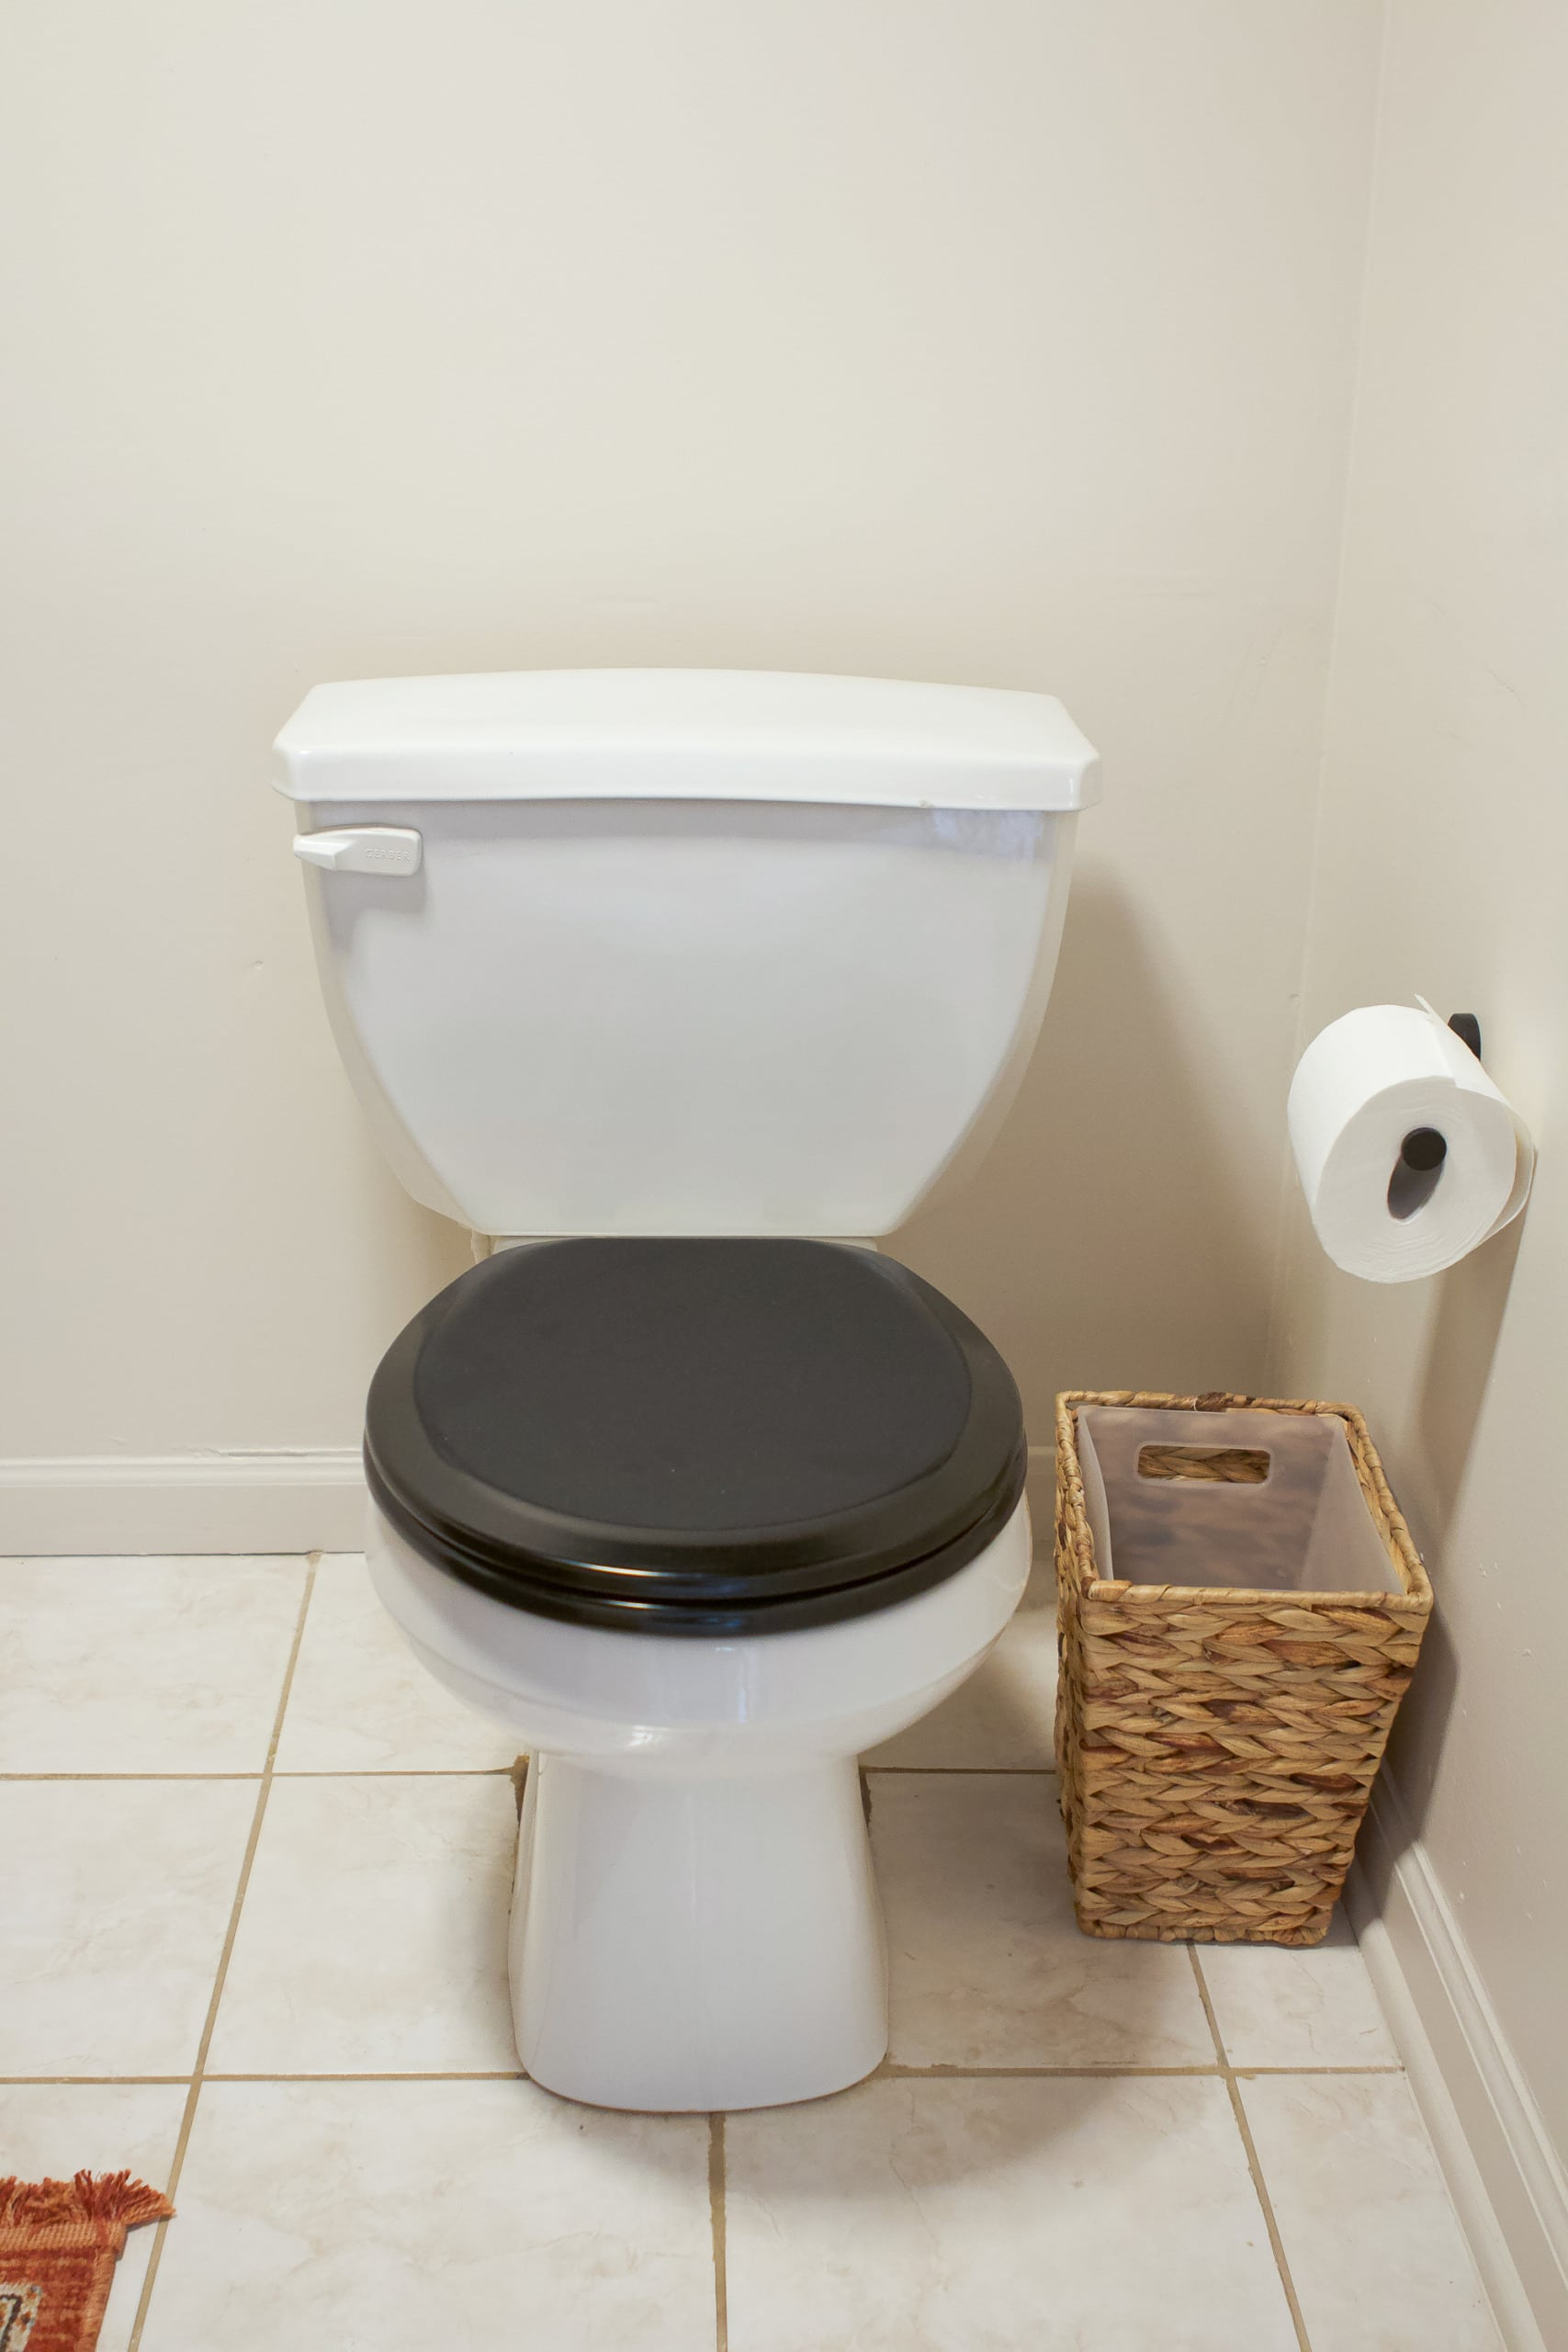 My new black toilet seat